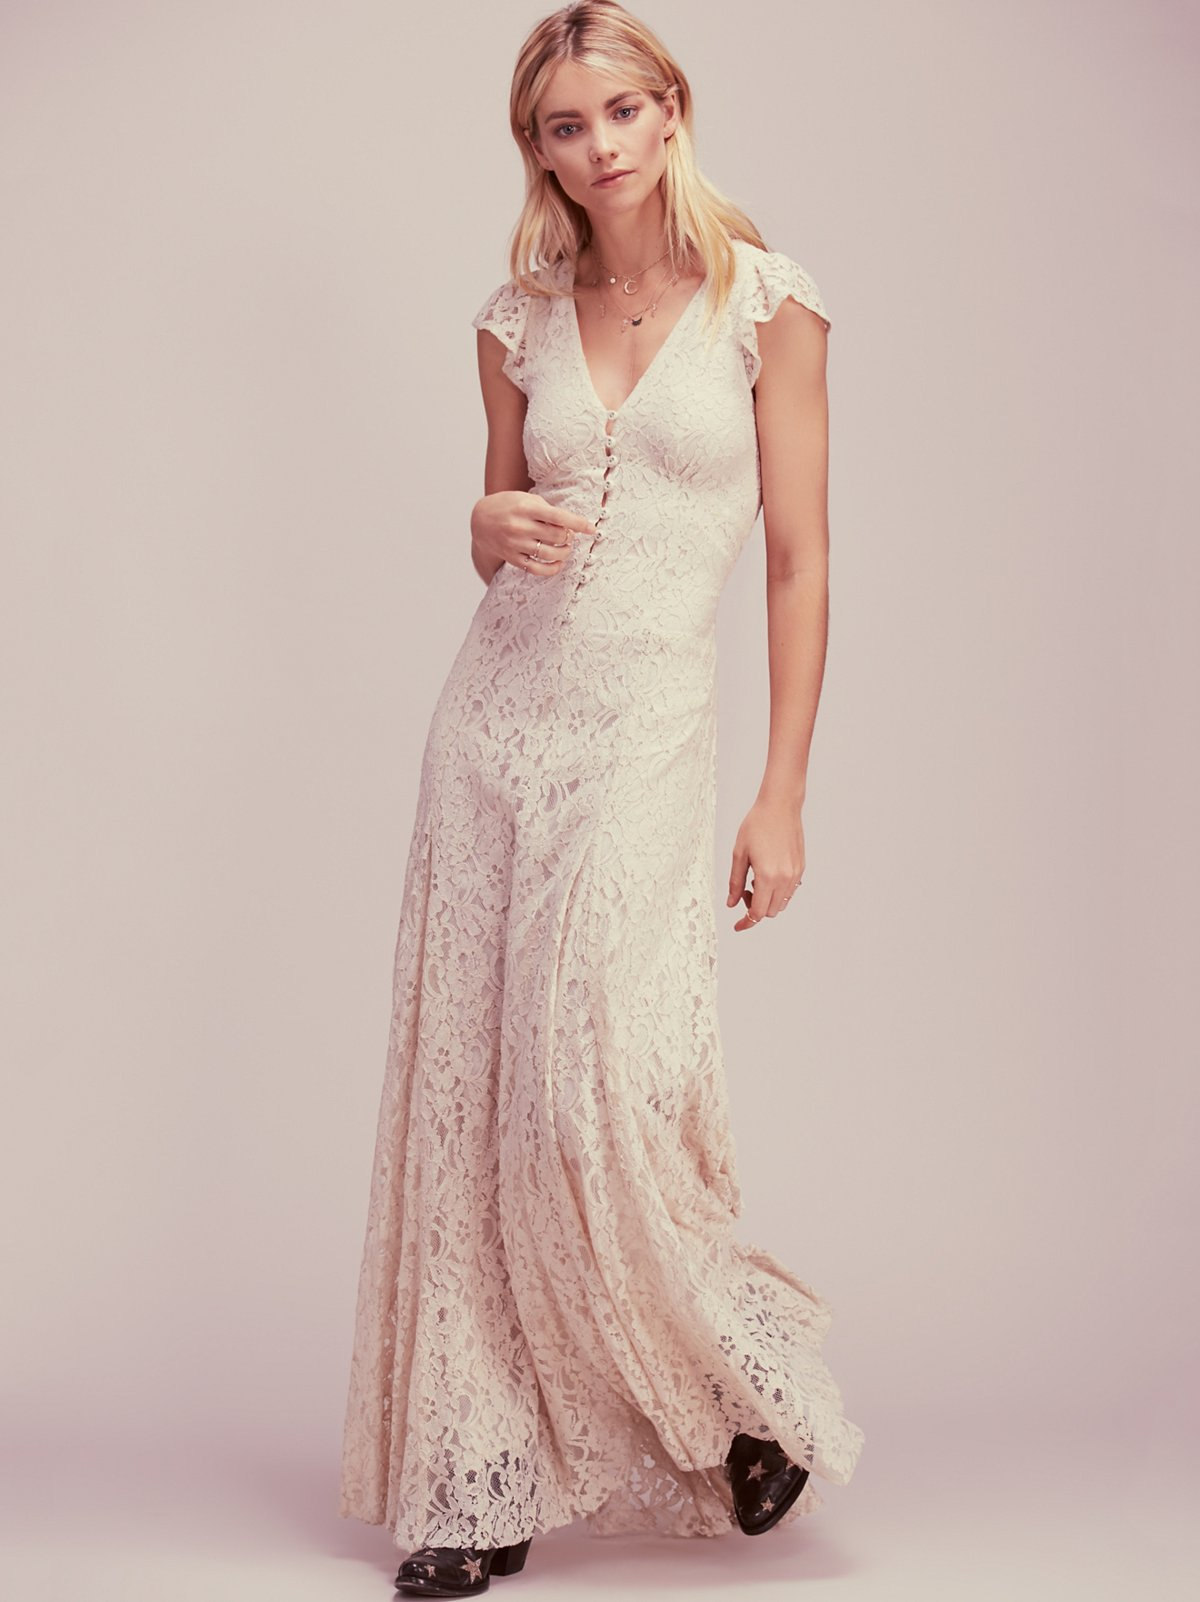 elopement dress from free people under $500